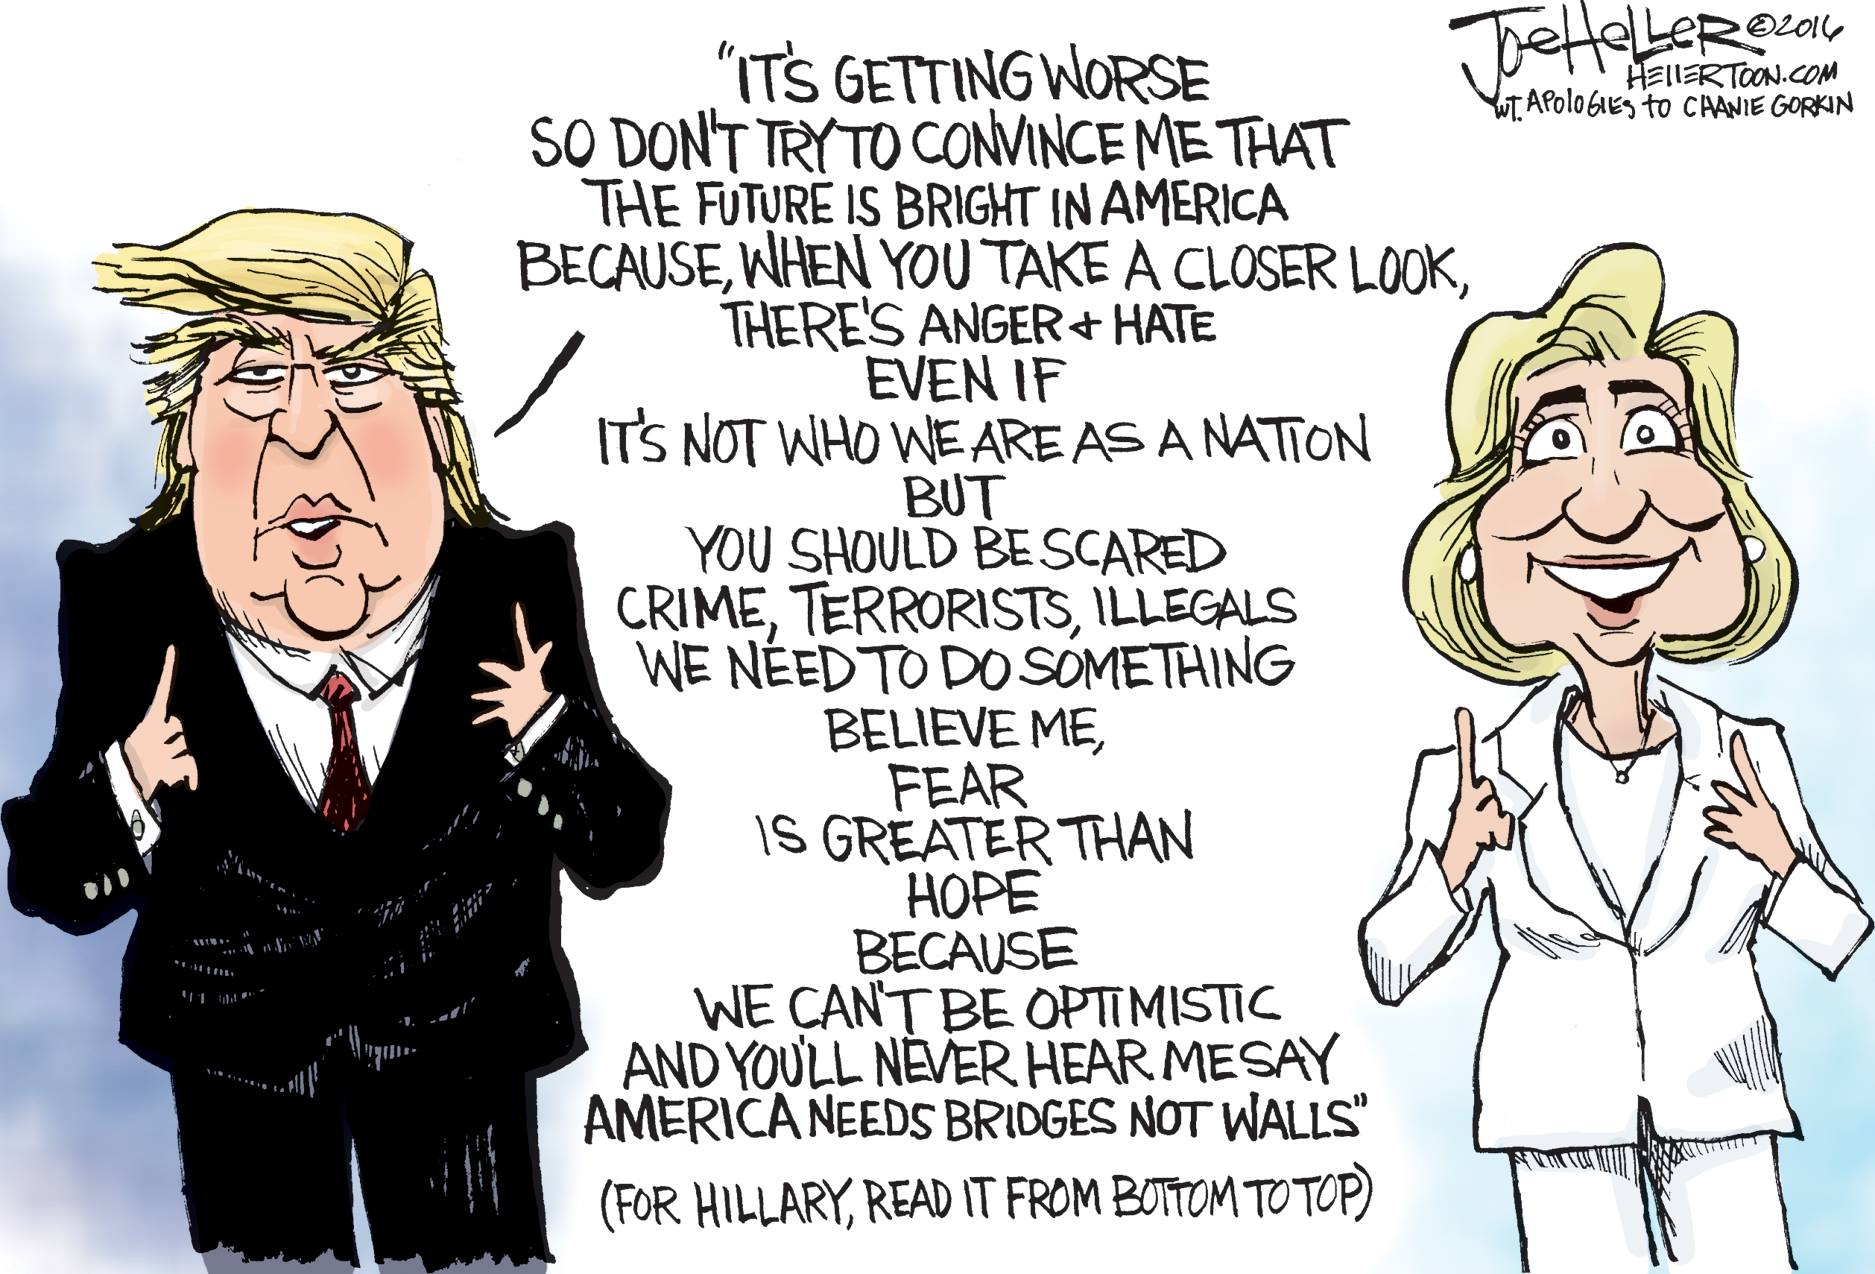 Brilliant Cartoon Sums Up Trump And Clinton Campaigns In 19 Identical Lines, Read In Reverse Orders